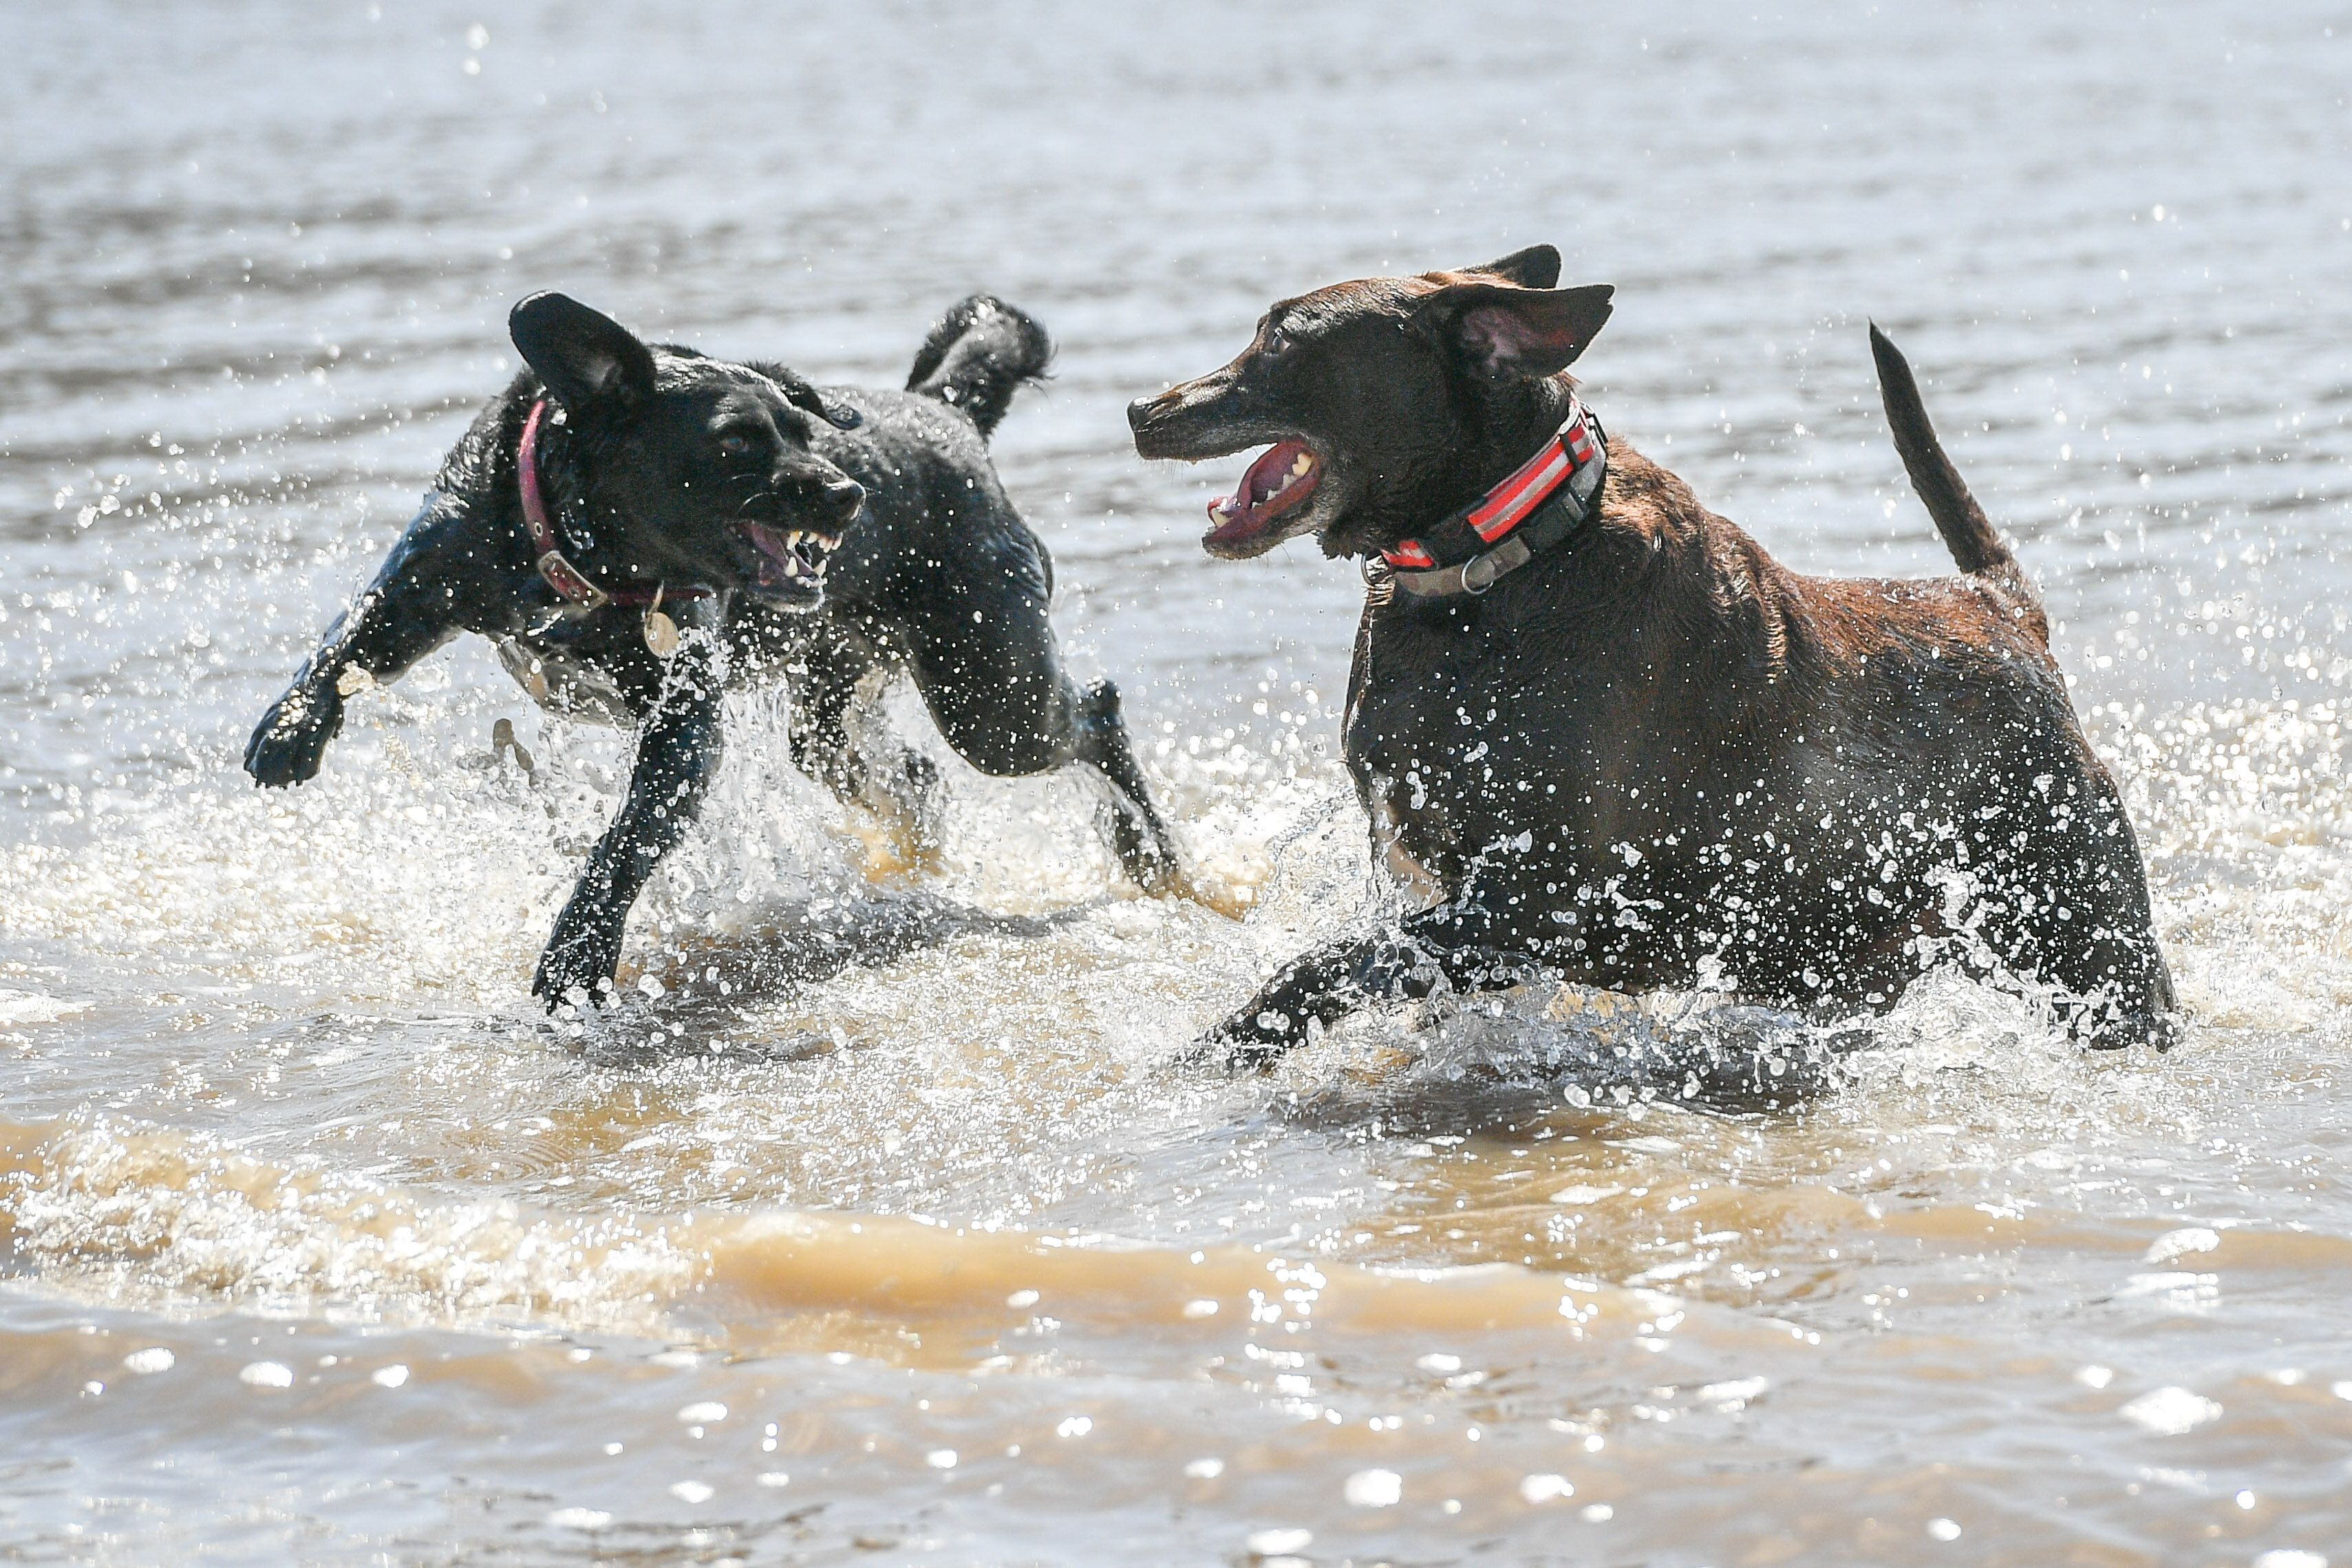 Dogs cool off as they play in the sea at Weston-super-Mare as the UK enjoys a spell of hot weather. (Photo by Ben Birchall/PA Images via Getty Images)